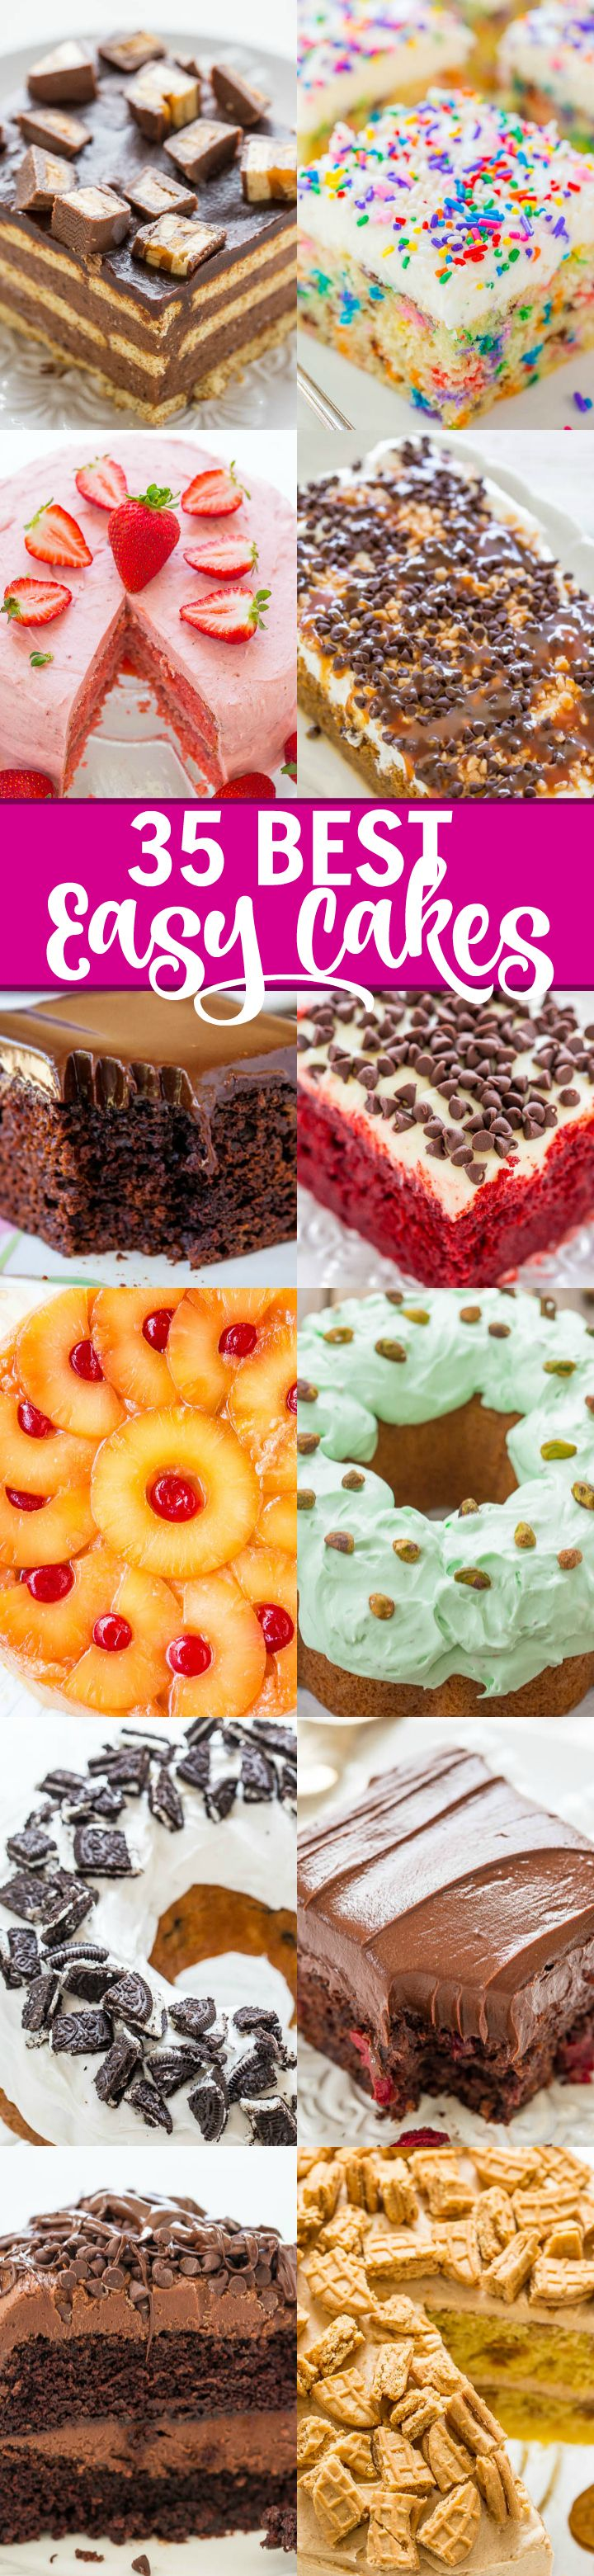 35 BEST Easy Cakes - Whether it's a birthday cake, anniversary cake, or a just-because cake, you'll find the perfect EASY cake here!! Only the BEST recipes including chocolate, fruity, pumpkin, red velvet, and more!!